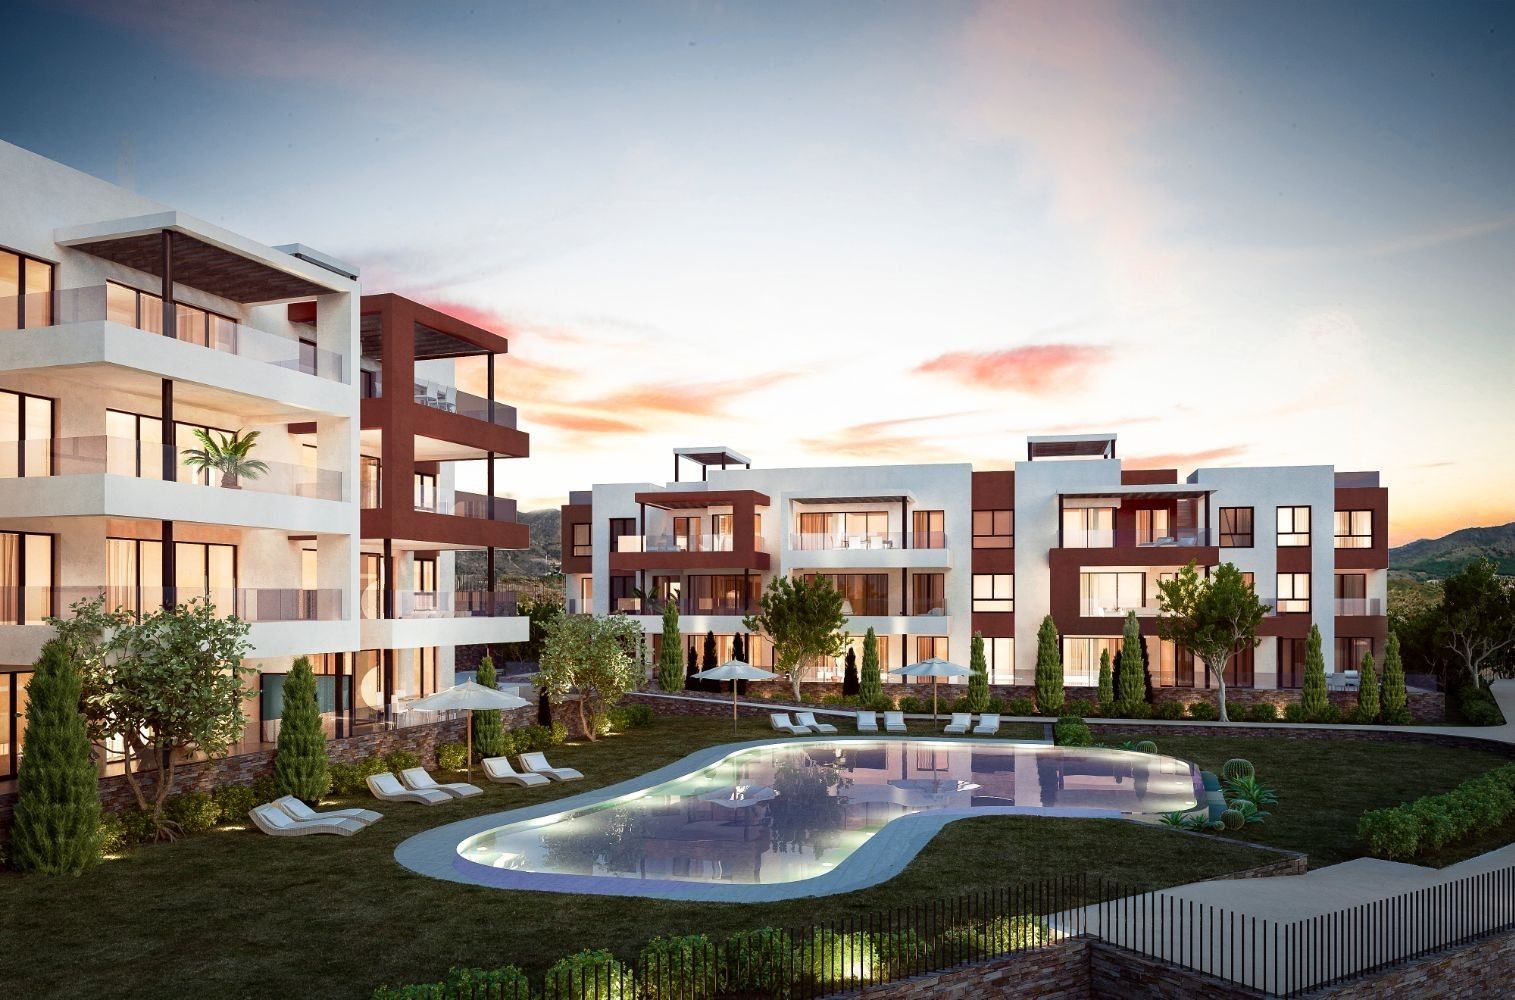 Middle Views, Carvajal, Fuengirola - Middel Views is a new construction development in Fuengirola. | Christie's International Real Estate